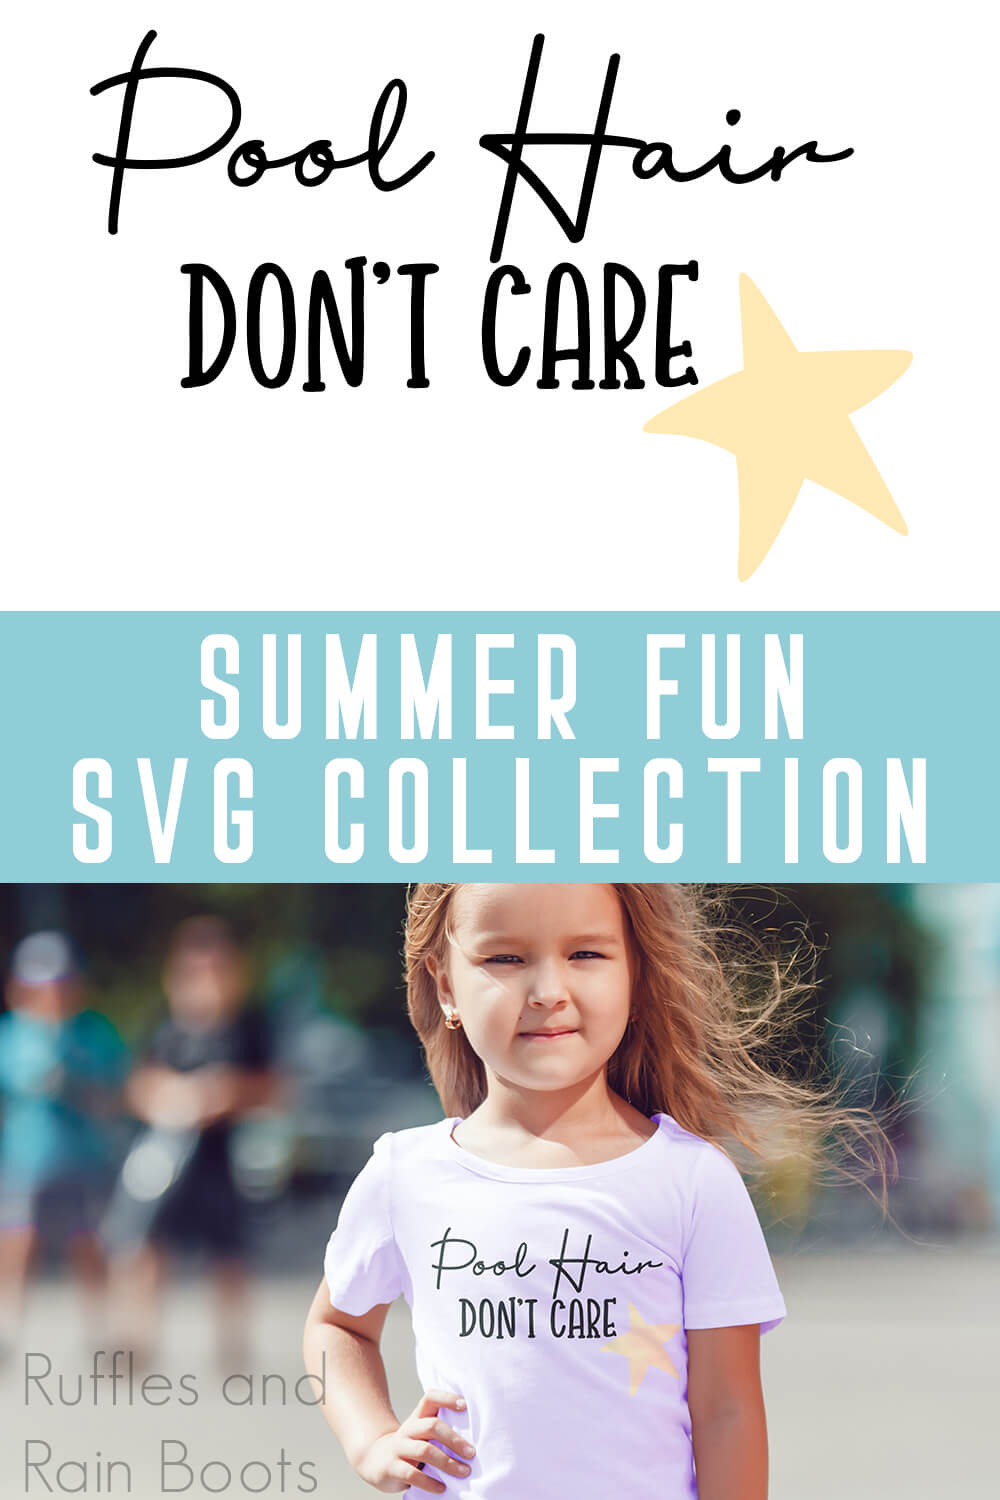 Pool Hair Don't Care with Starfish free summer SVG for cricut on Kid T-Shirt which a little girl is wearing with text which reads summer fun svg collection